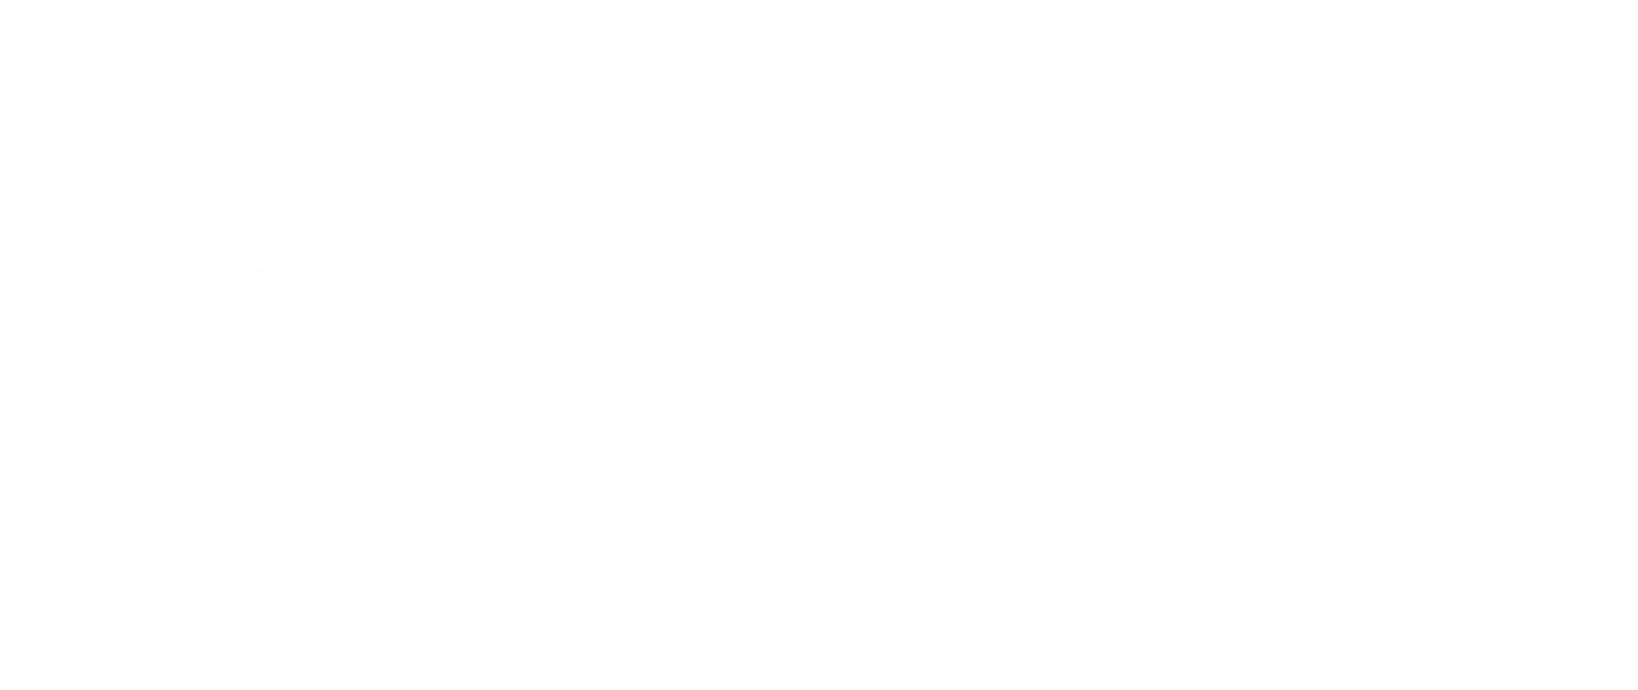 32-Bridge-Symbol-near-Black-textured